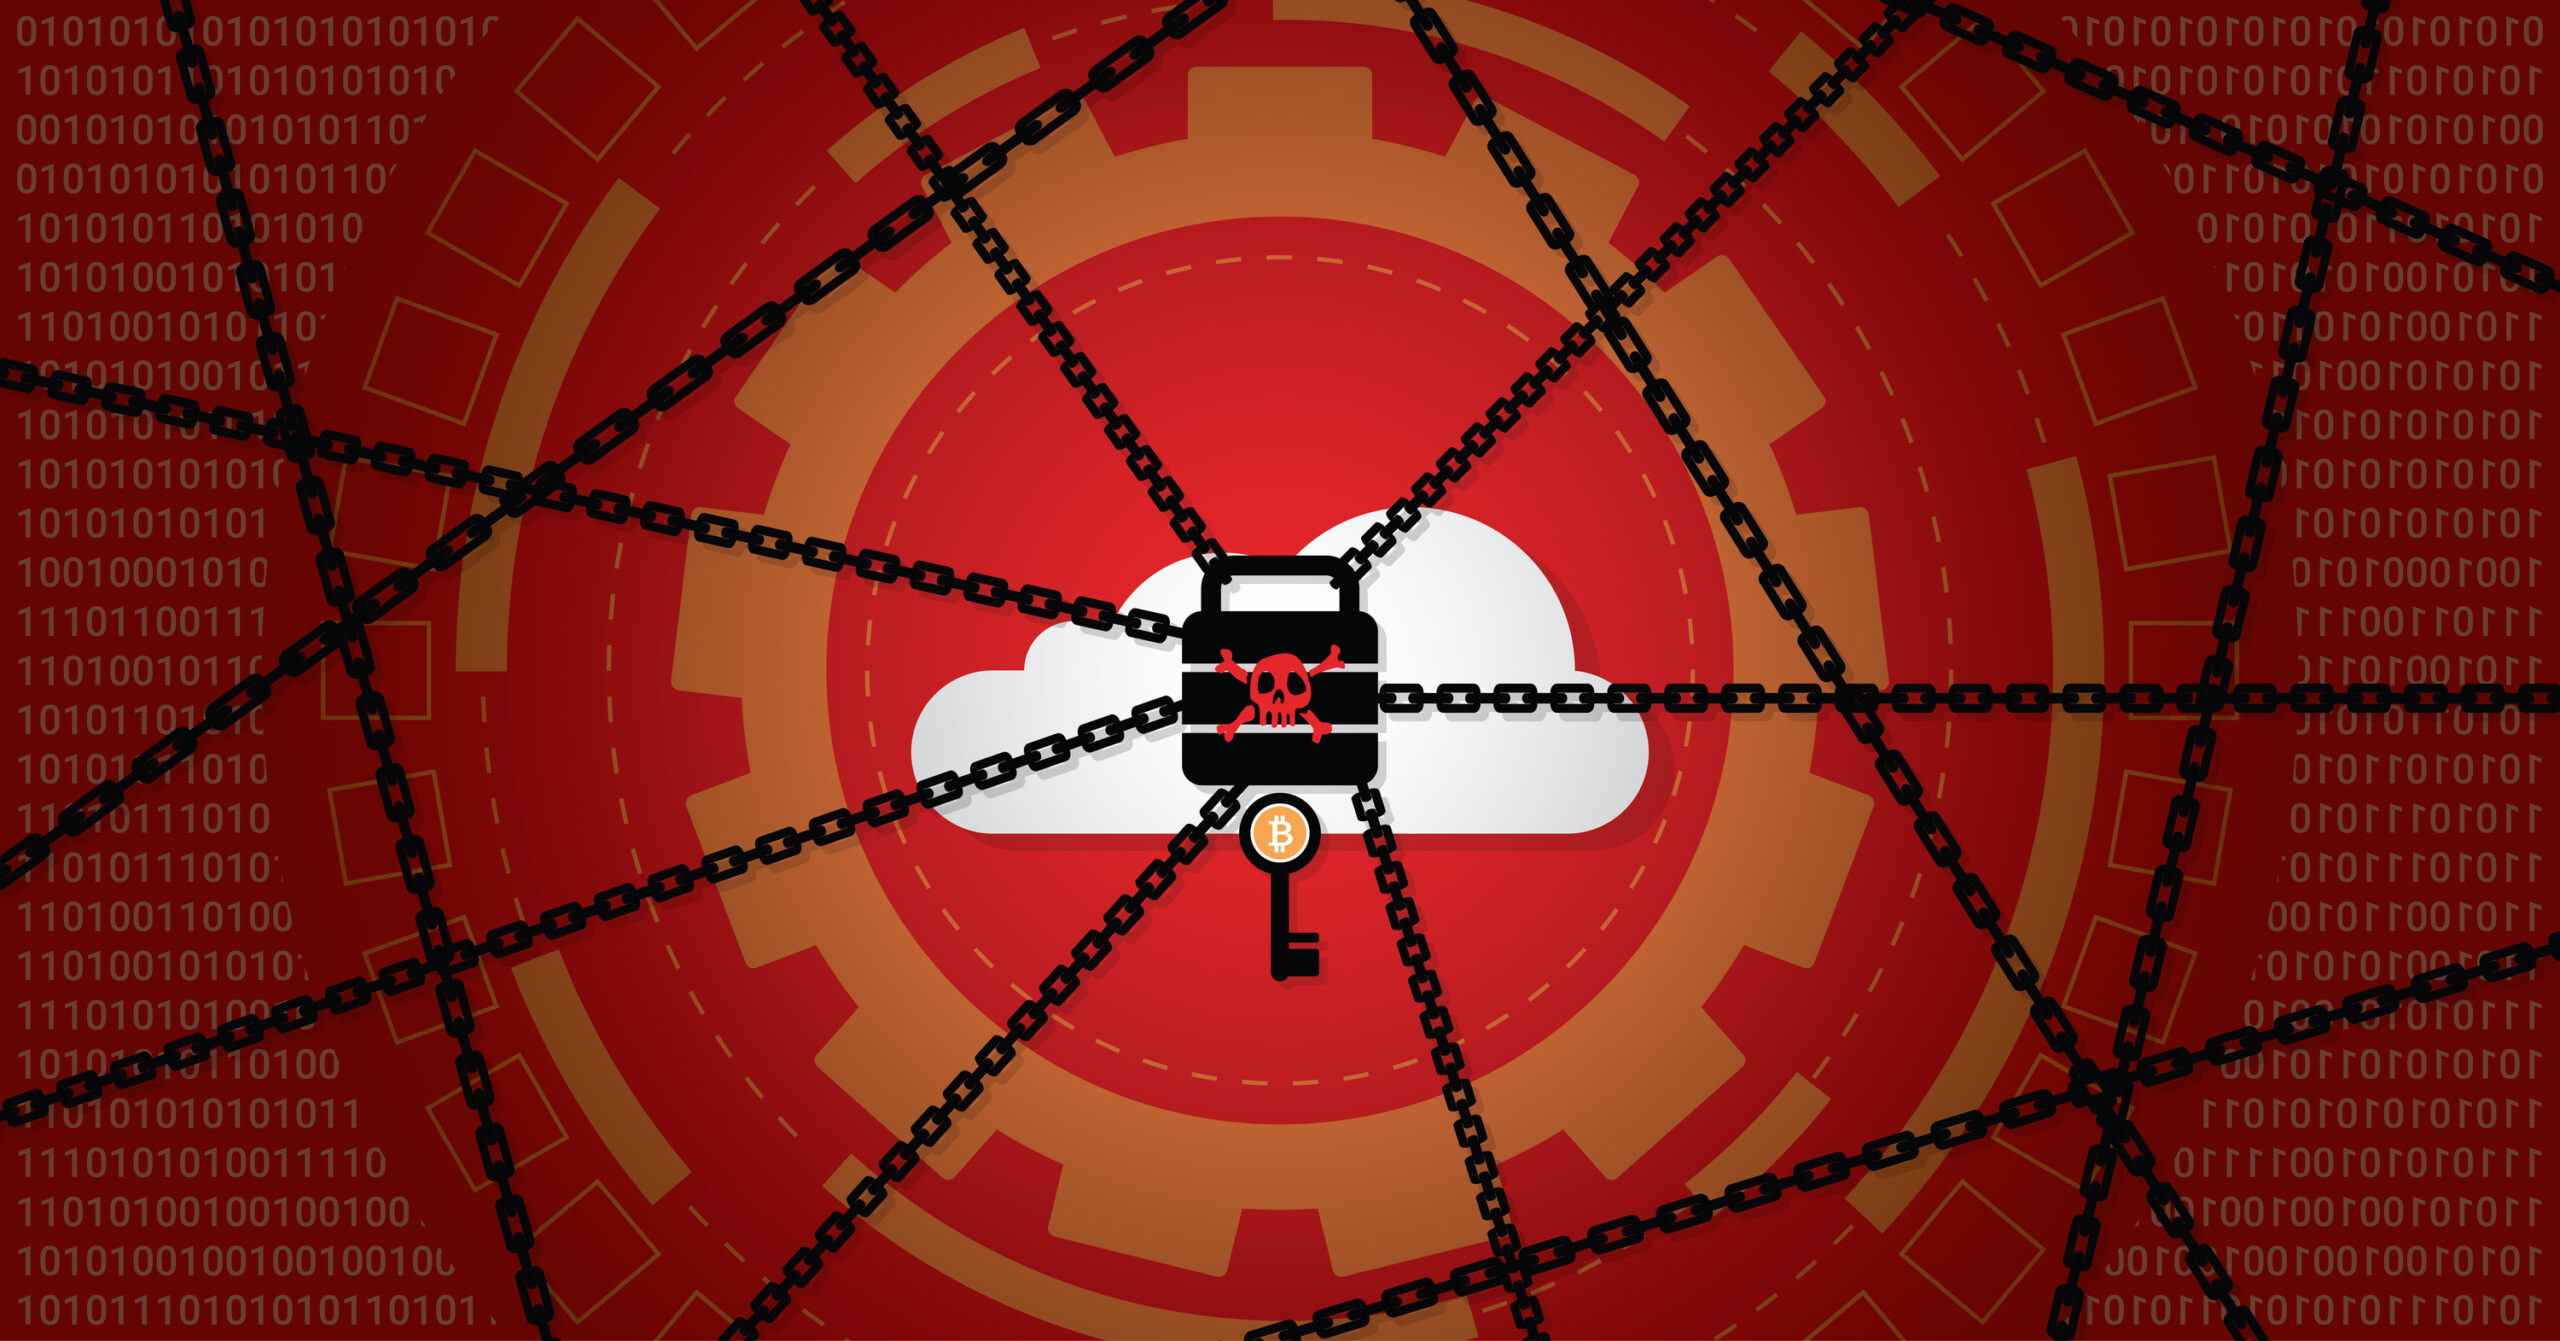 Cyber Insurance Industry in Crosshairs of Ransomware ...